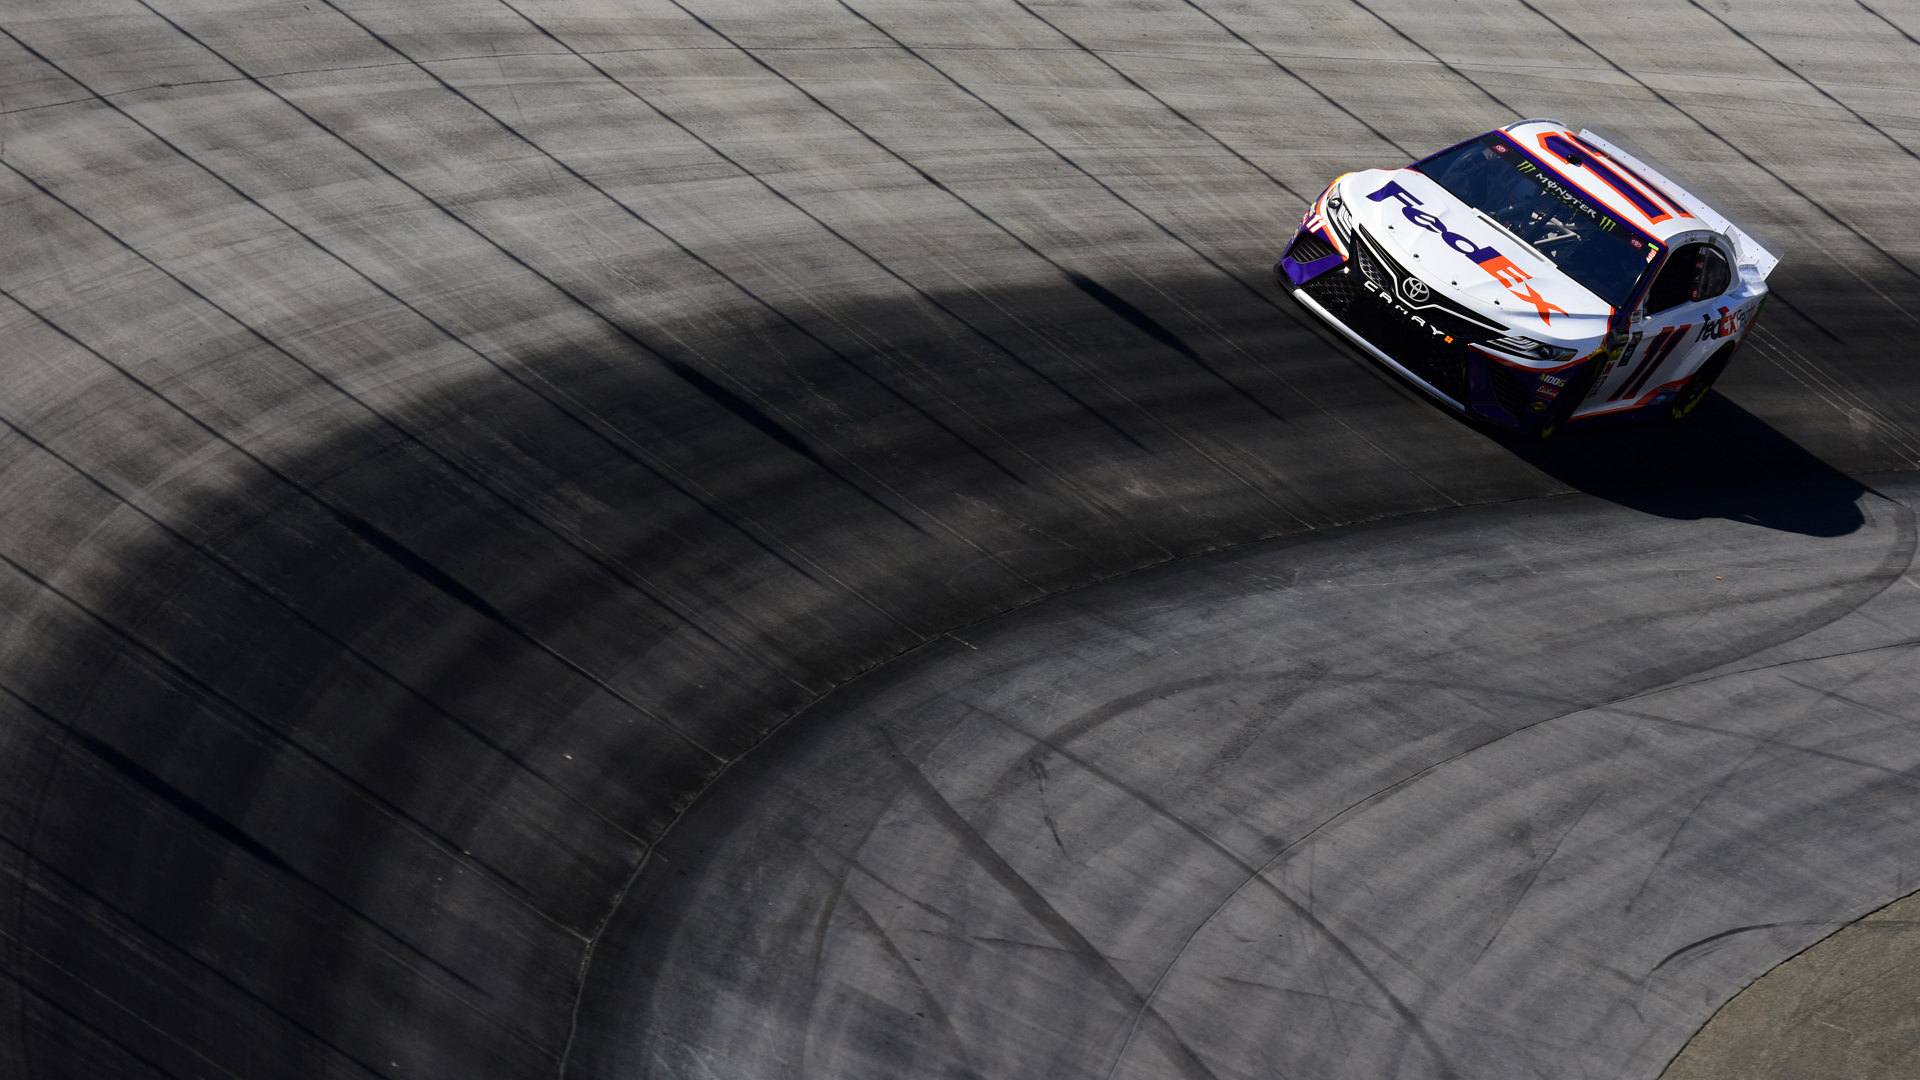 NASCAR starting lineup at Bristol: Denny Hamlin wins pole; full qualifying order set for Bass Pro Shops NRA Night Race